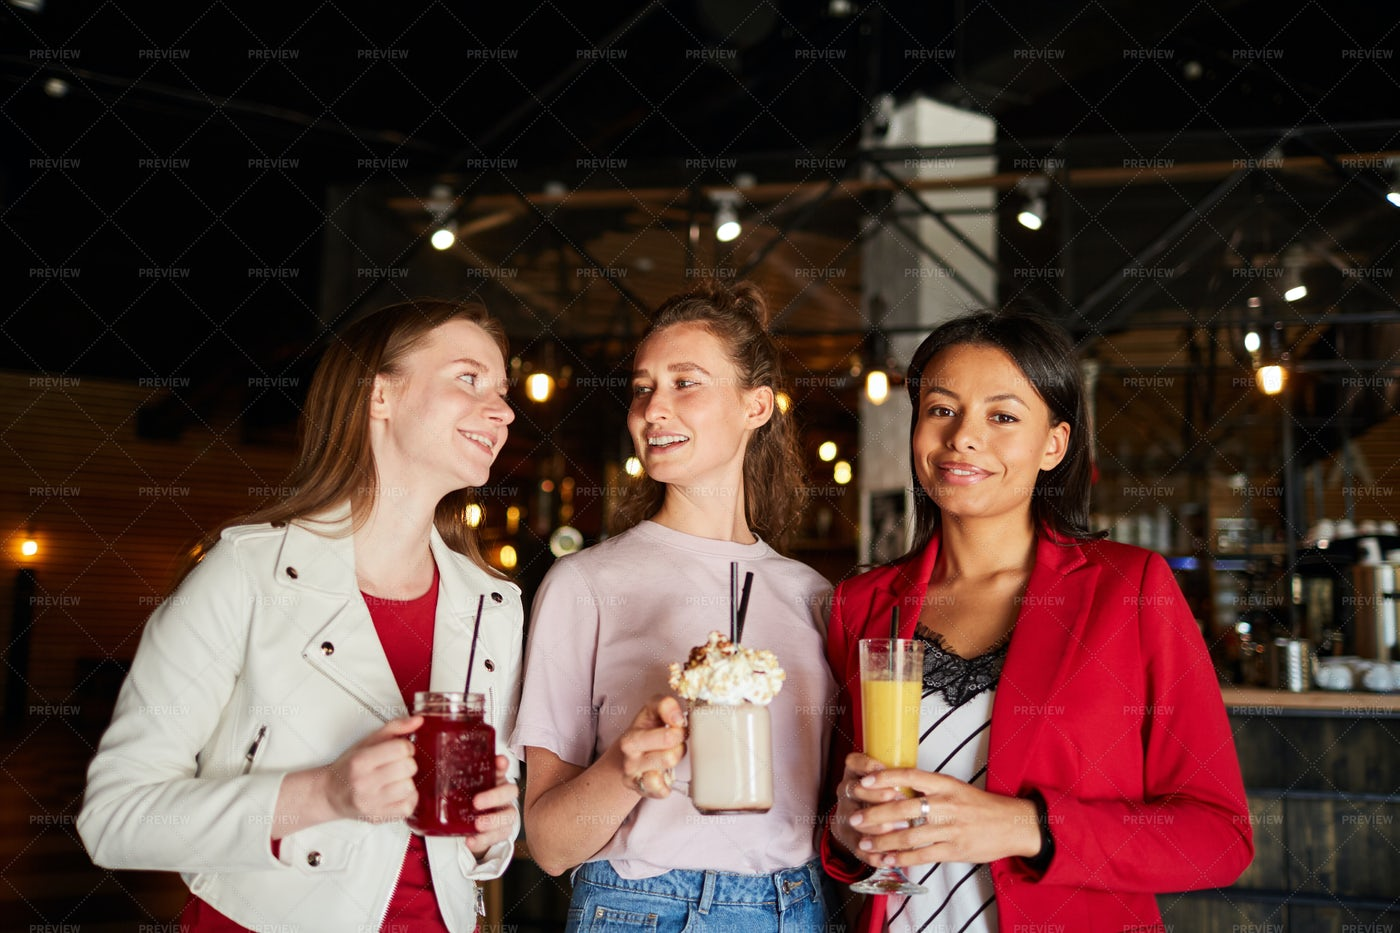 Smiling Women With Beverages: Stock Photos